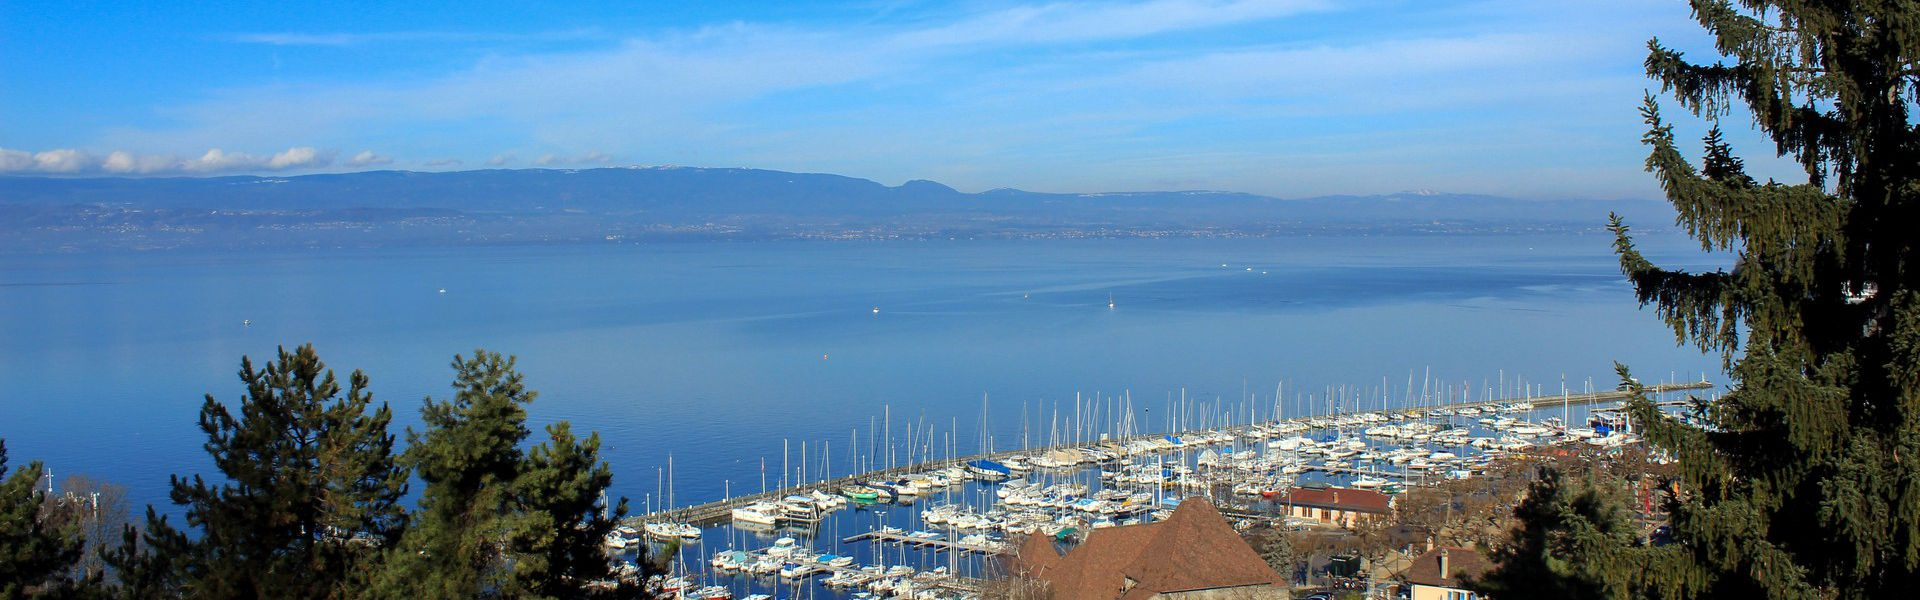 The city of Thonon-les-Bains